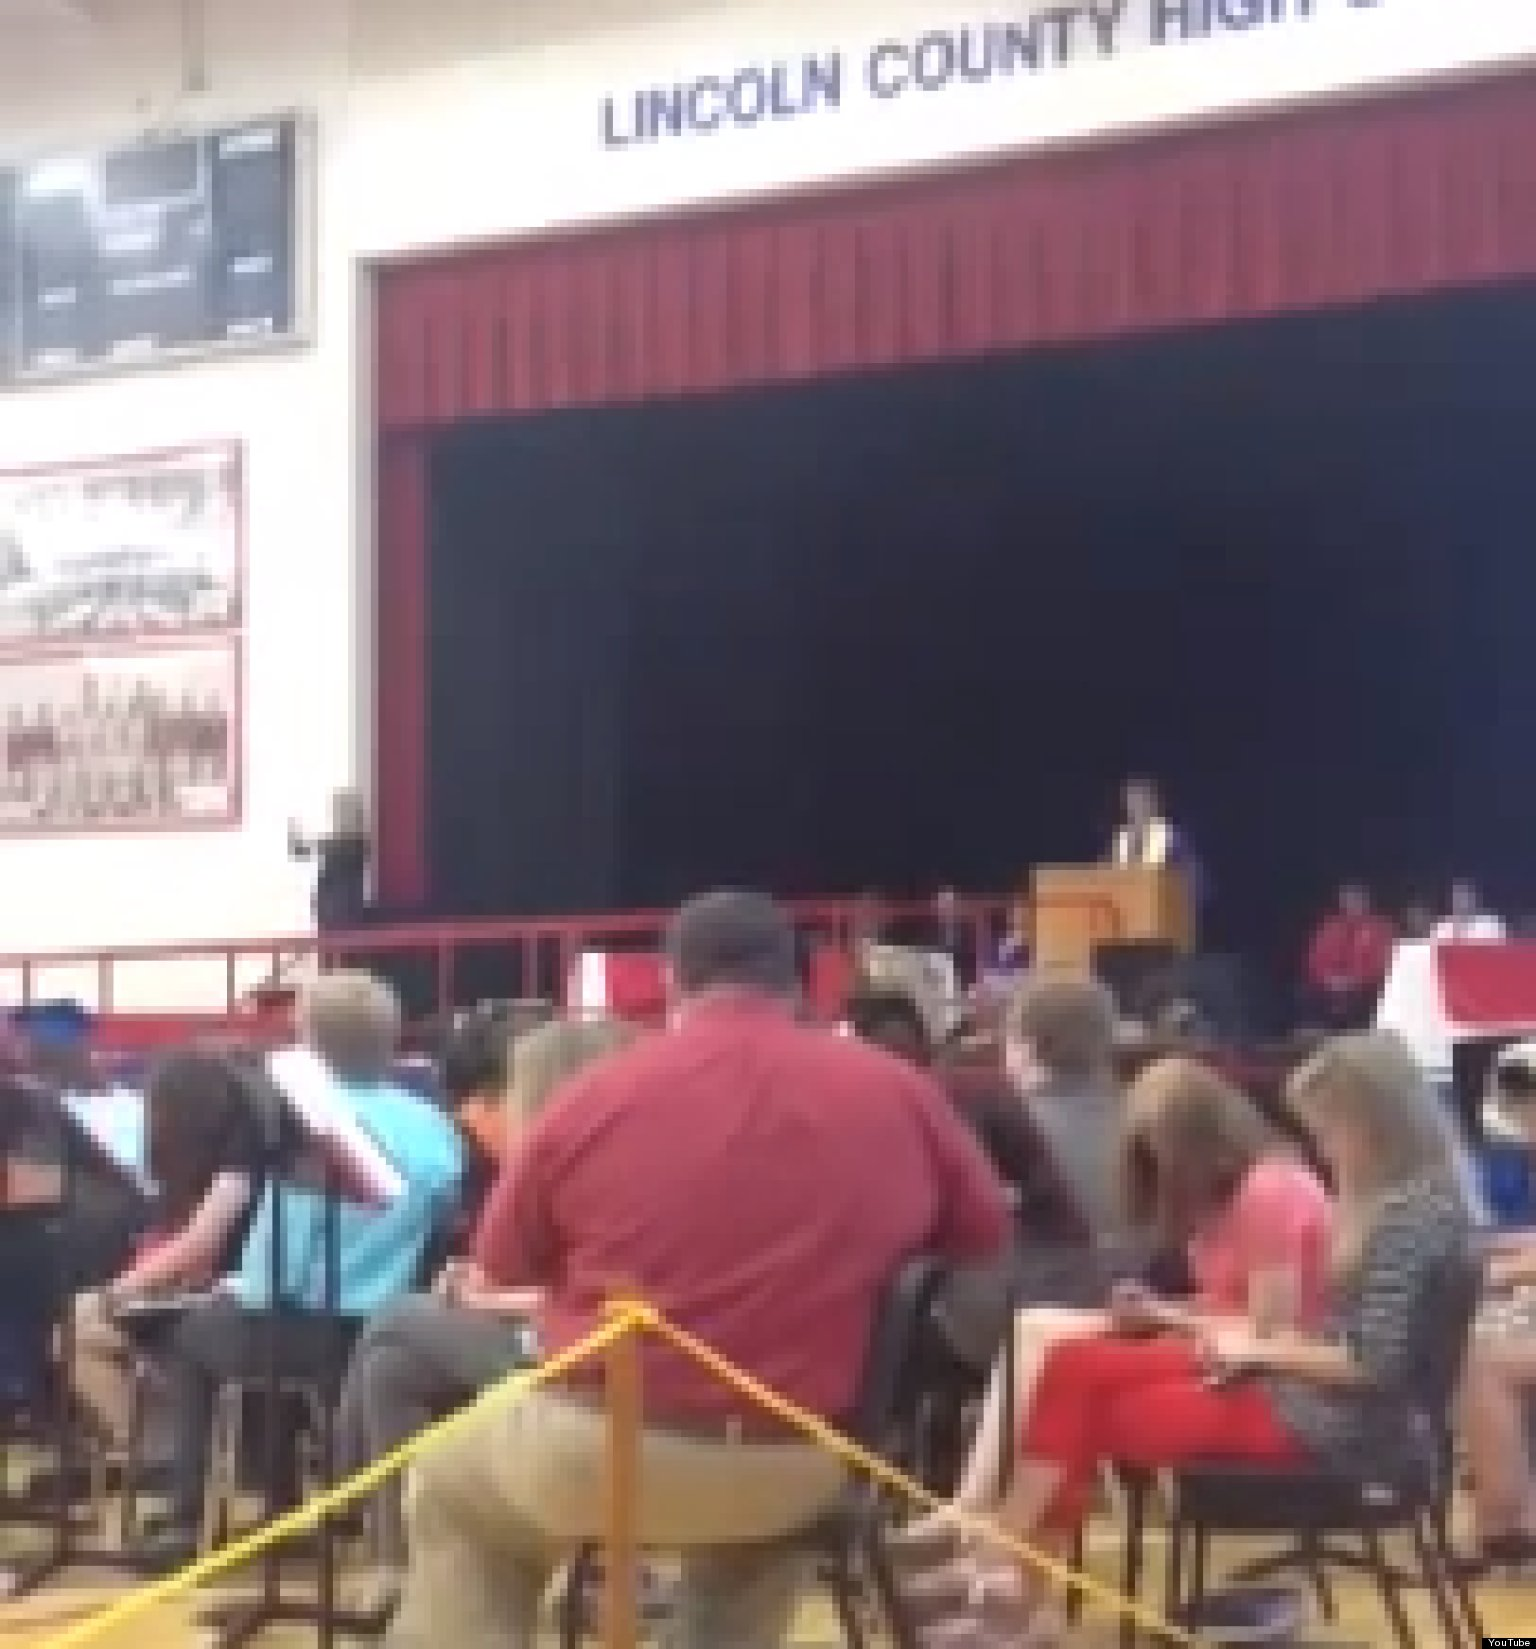 Lincoln Tech College: Kentucky's Lincoln County High School Has Prayer At